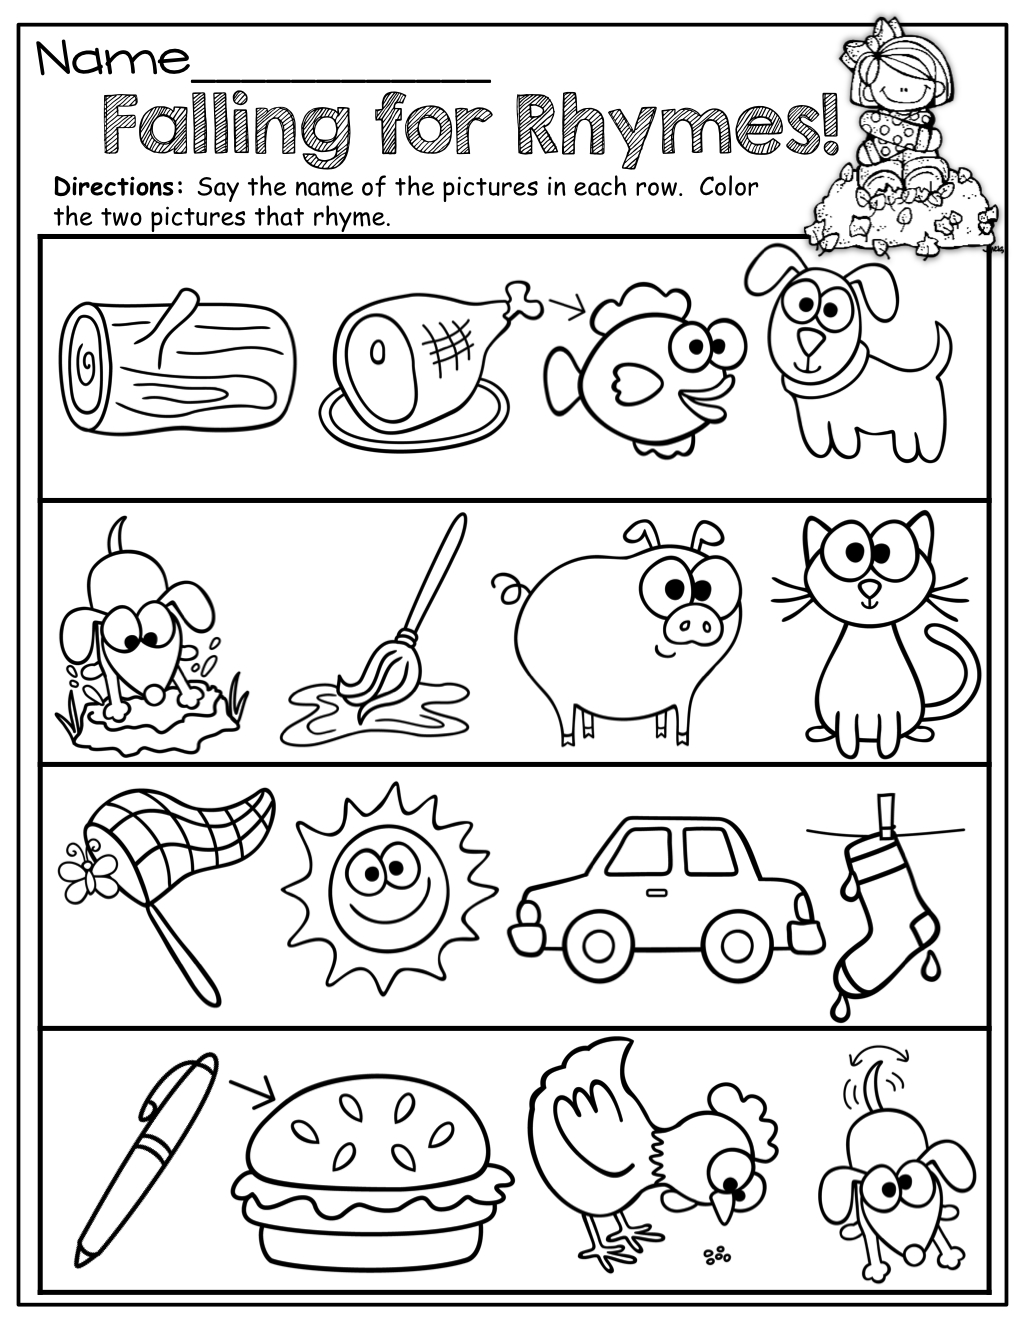 Repinnedmyslpmaterials Visit Our Page For Free Speech - Free Printable Rhyming Words